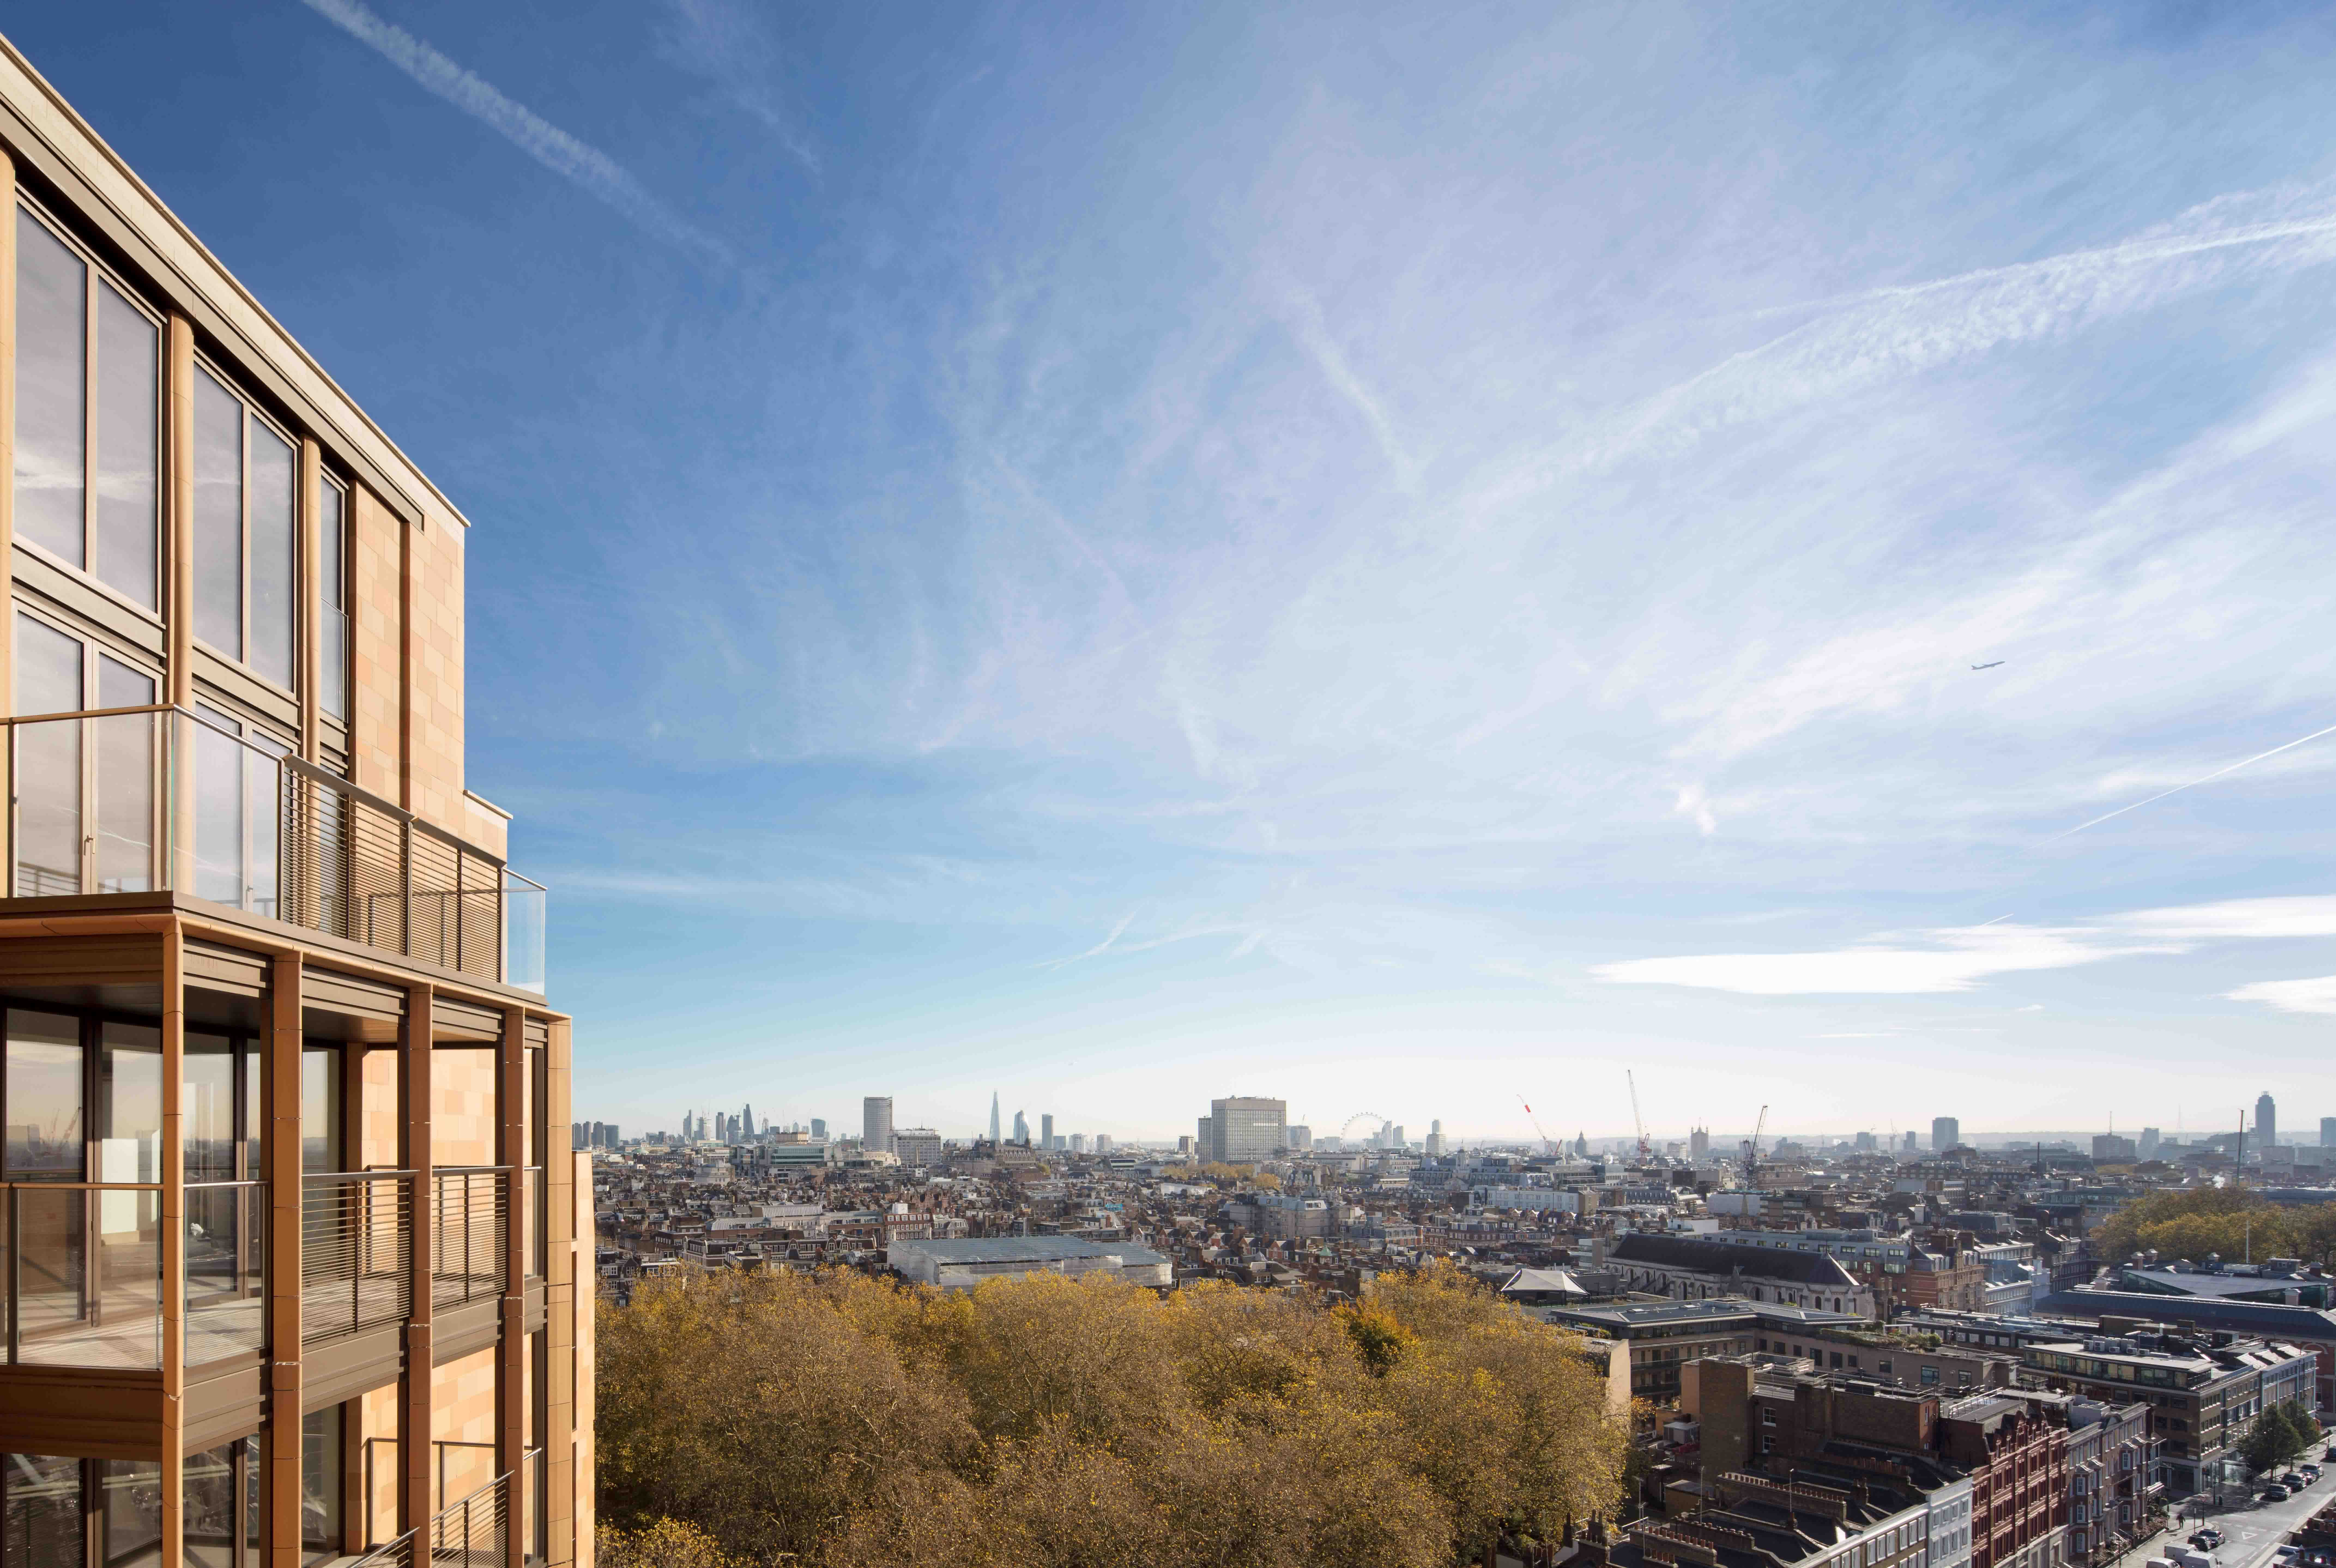 Sky View of Chiltern Place - Mace Group